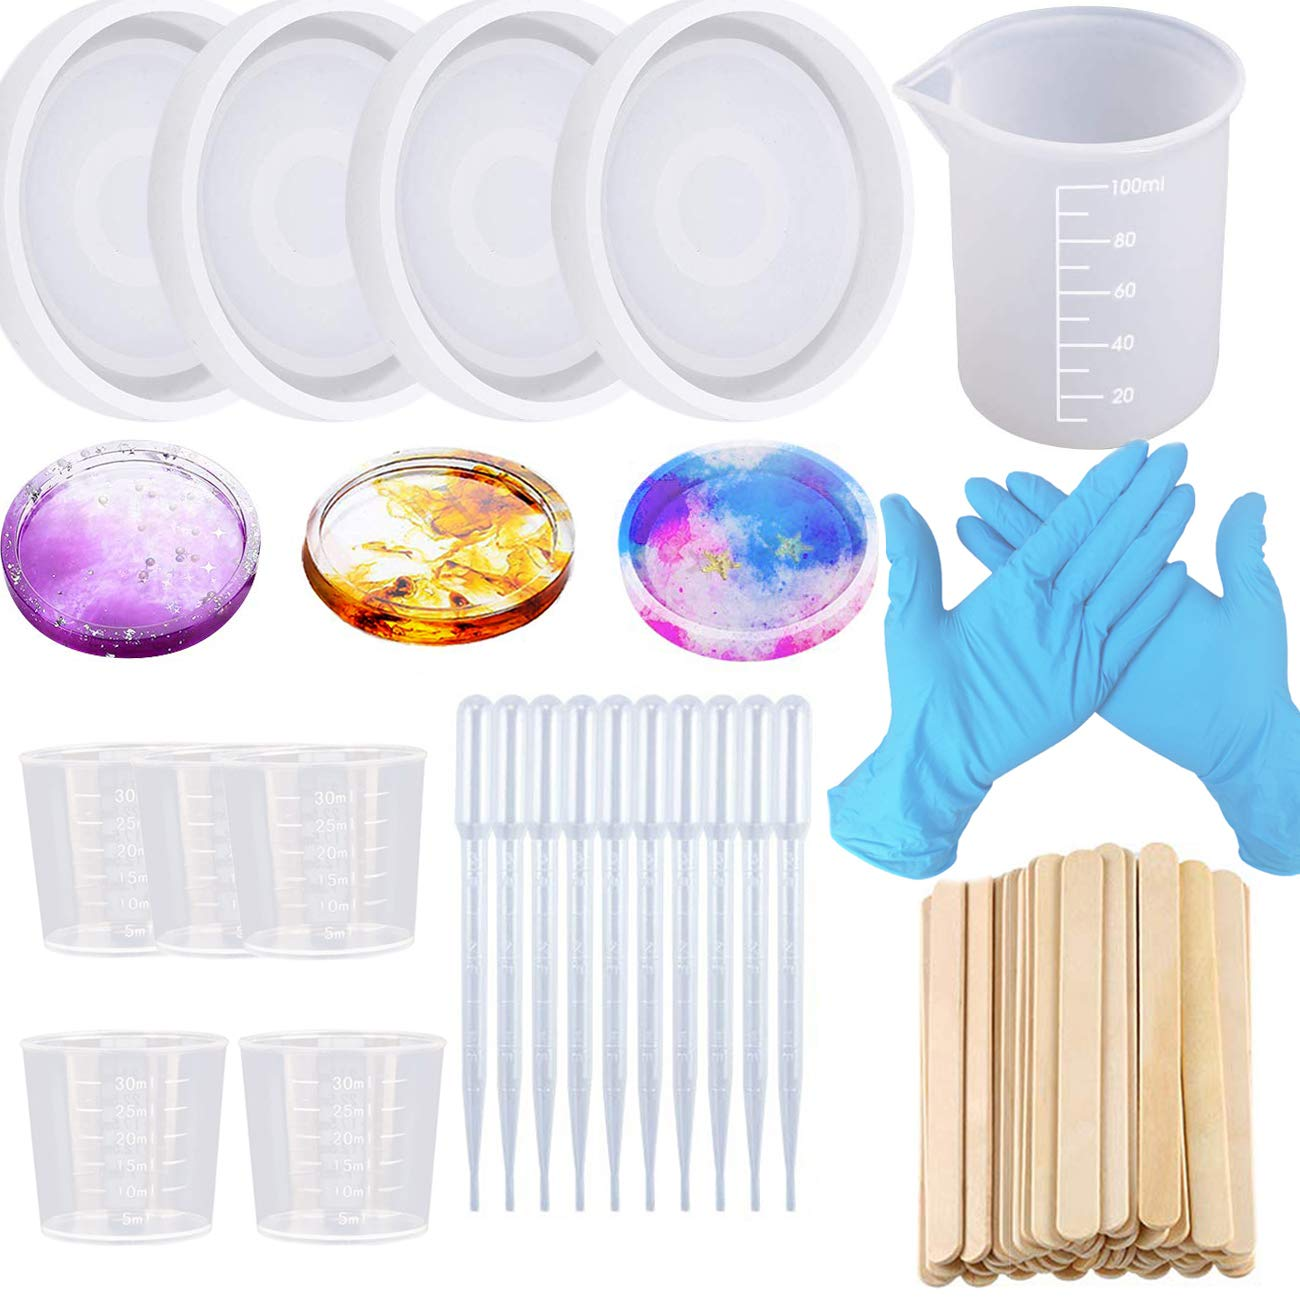 Clear Epoxy Molds for Casting with Resin Silicone Round Coaster Molds Concrete Cement and Polymer Clay Buytra Silicone Resin Mold with 81pcs Resin Mixing Kit